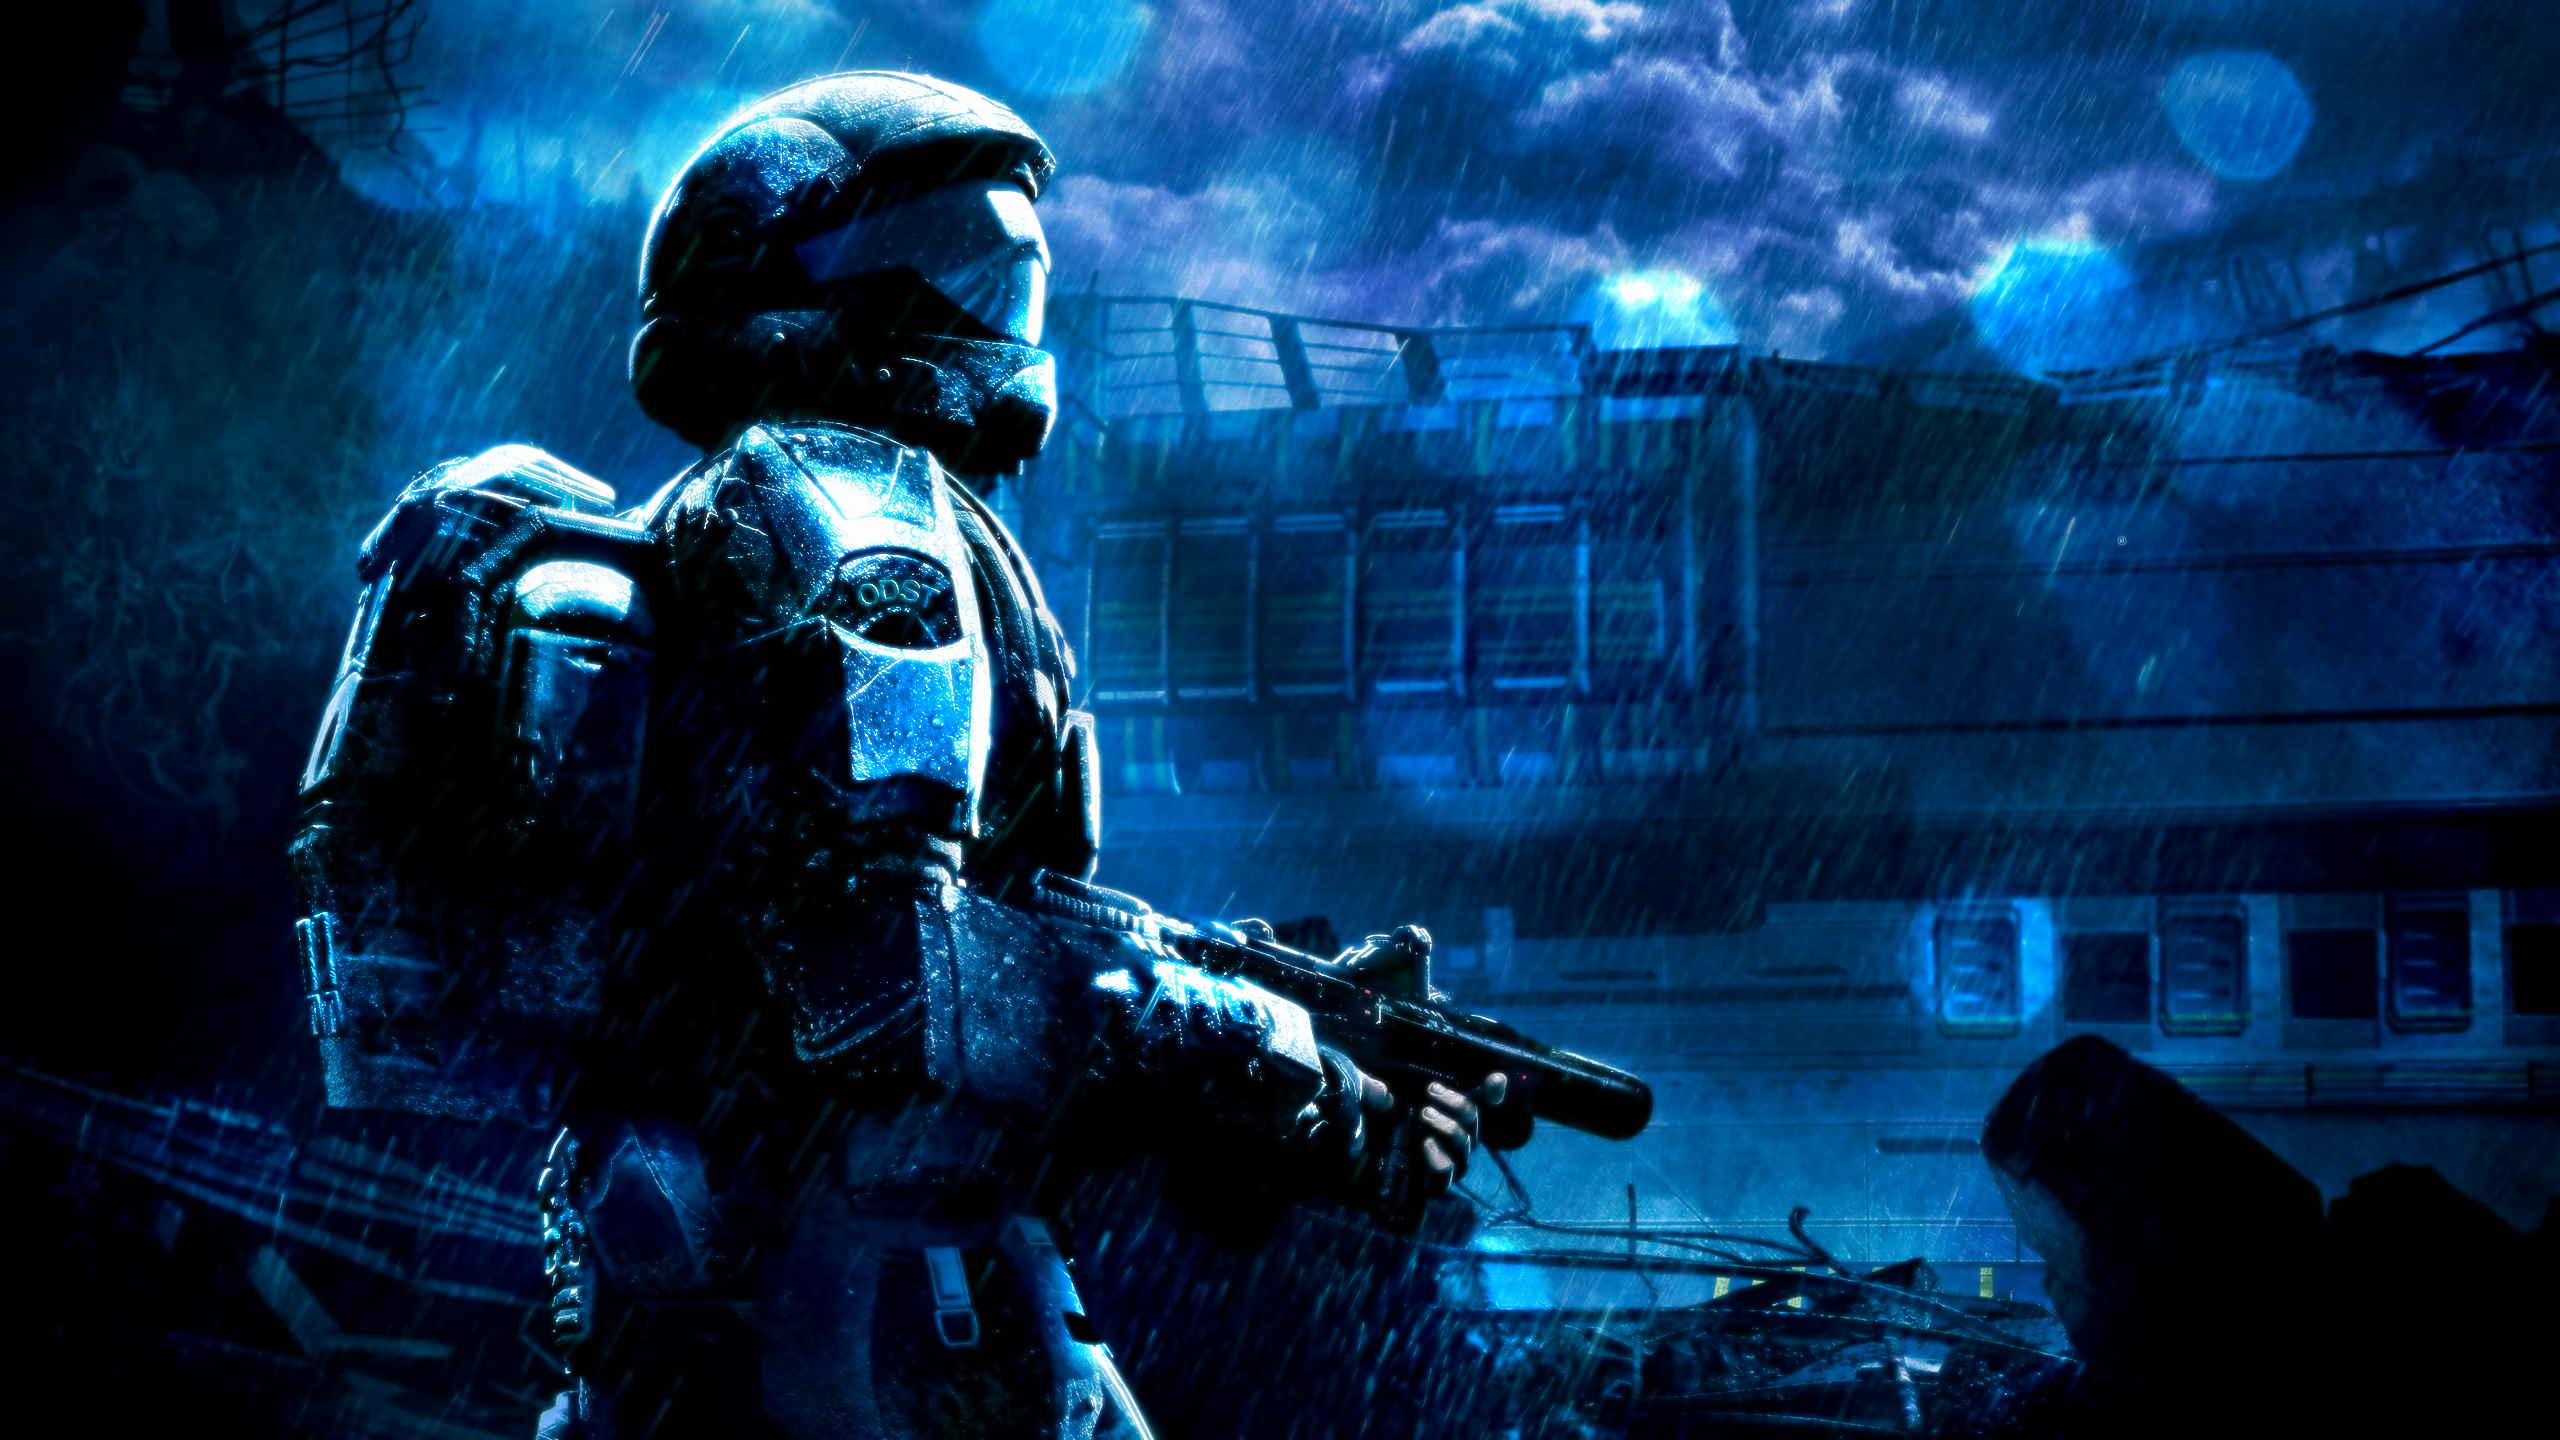 7 Halo 3: ODST HD Wallpapers | Backgrounds - Wallpaper Abyss